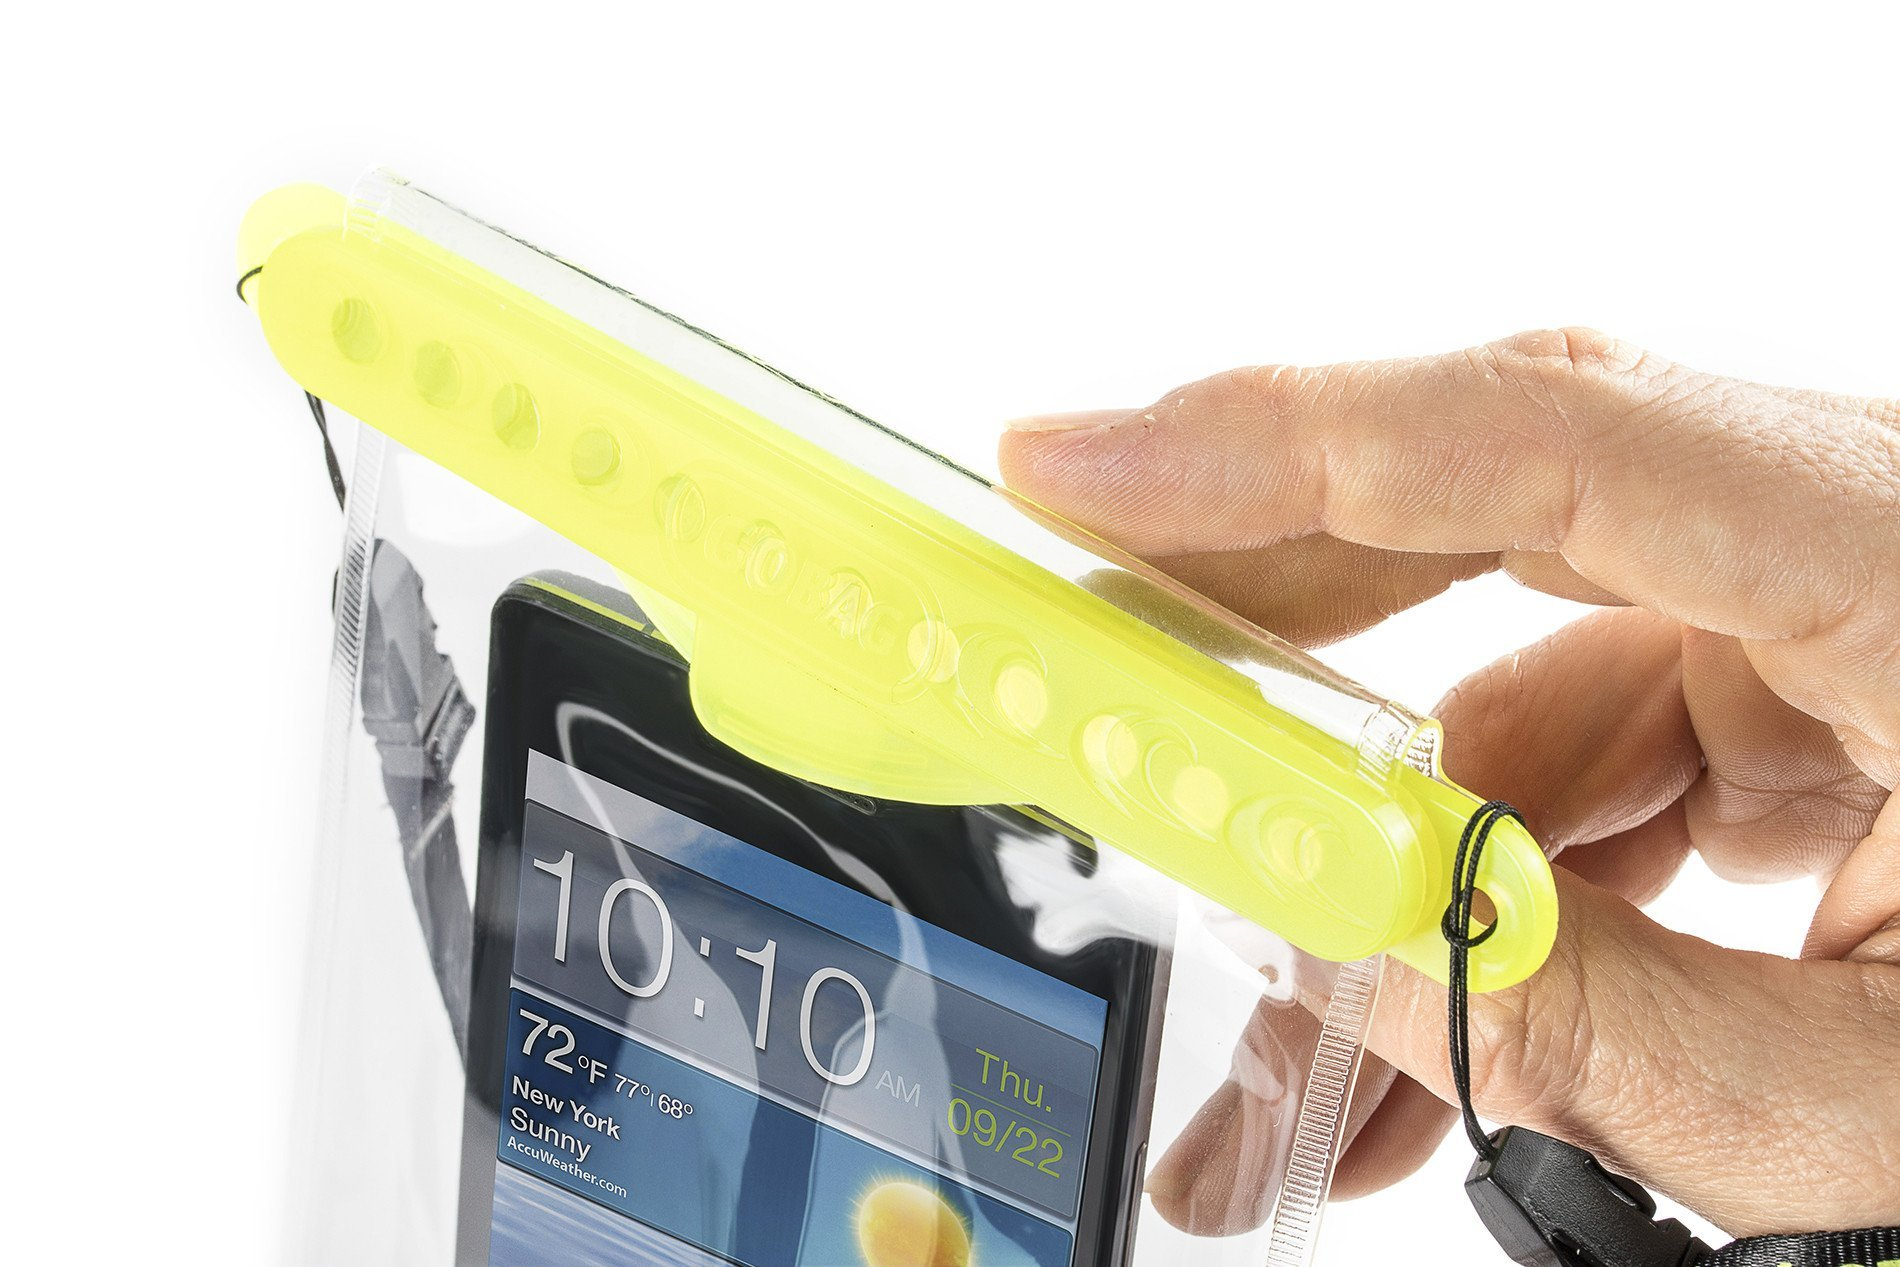 Go Bag Mako Dry Bag #1 Secure Air Tight Self-Sealing Magnetic Waterproof Case to 100 ft. Hermetic Seal Cell Phone Touchscreen Sensitive 7.5'' x 5.75'' Fits iPhone 6,7 8 + Plus (Yellow) by Go Bag (Image #5)